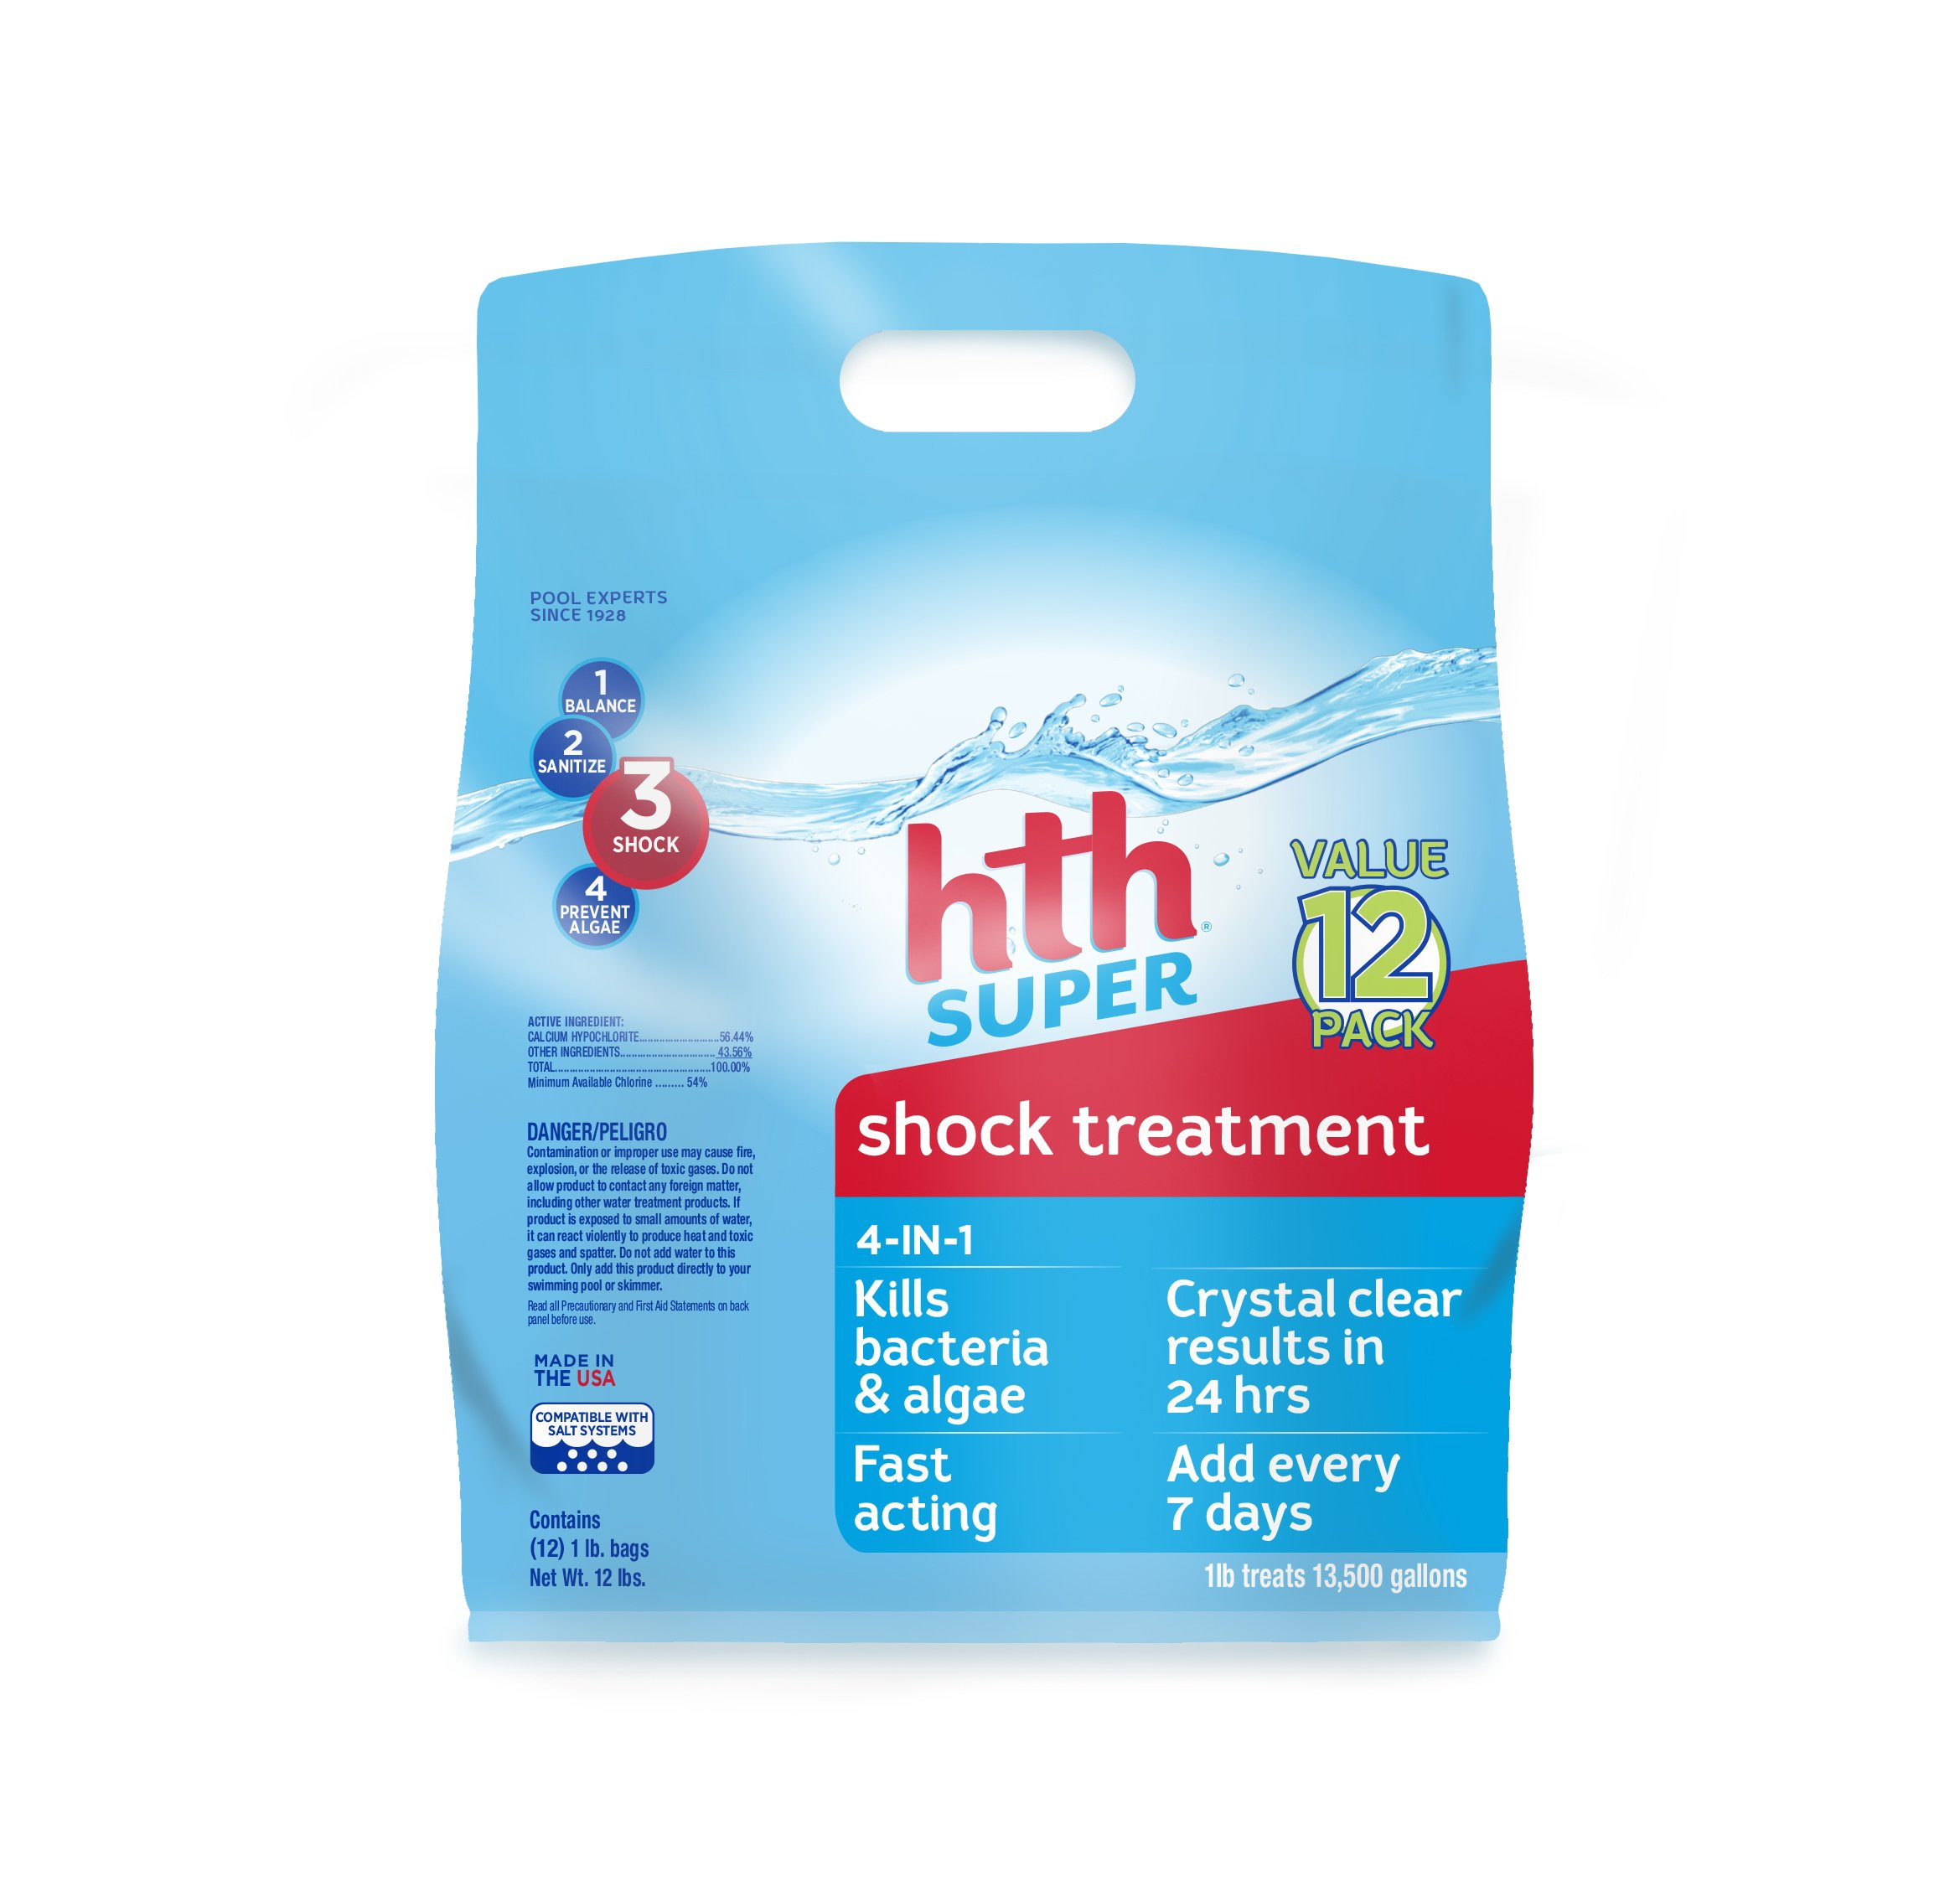 hth 52016 Super Swimming Pool Shock, Pack of 12, White by HTH